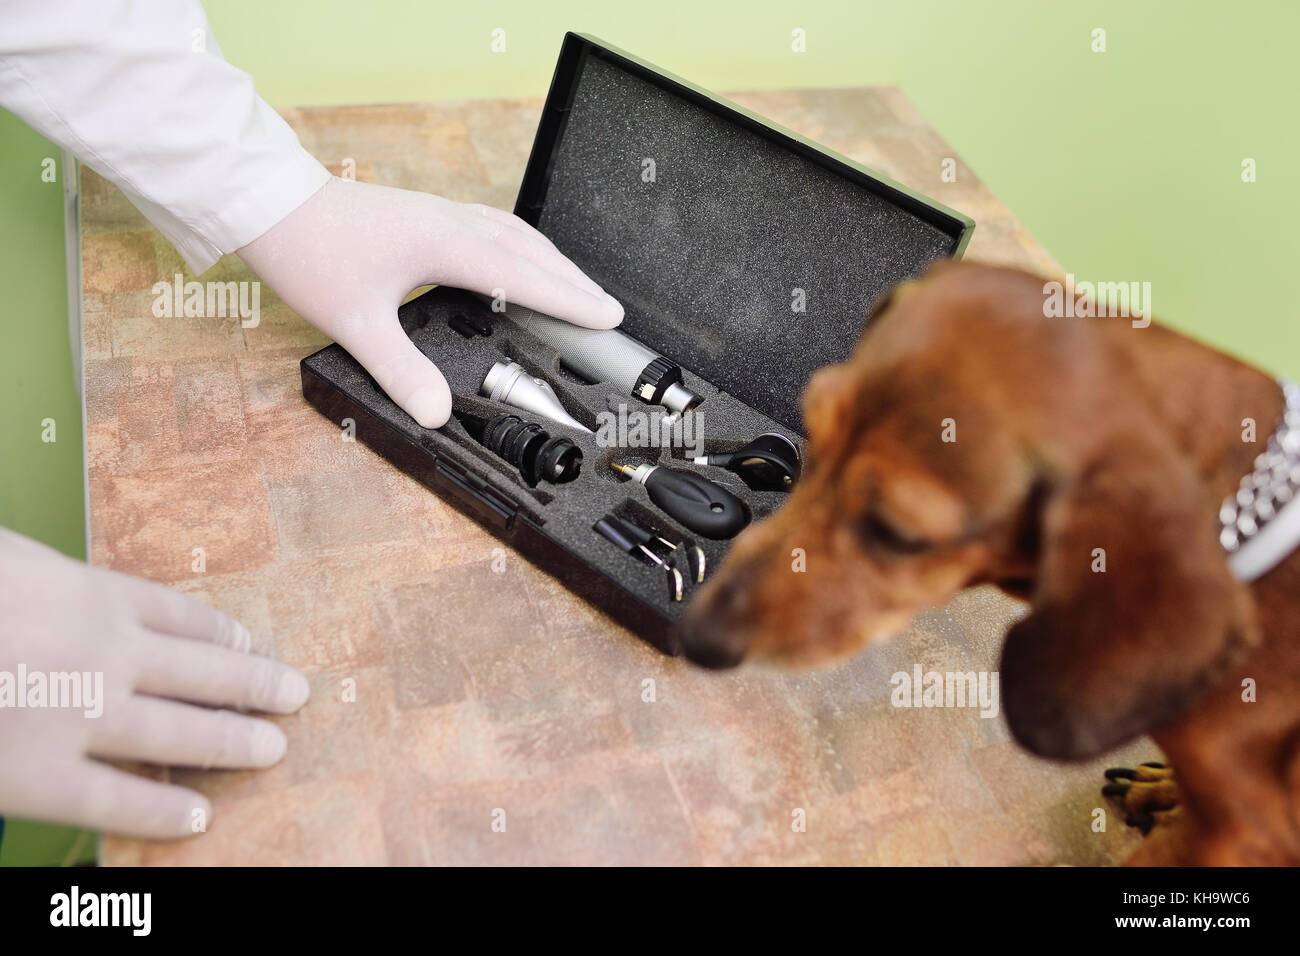 medical examination of dog dachshunds in a veterinary clinic - Stock Image